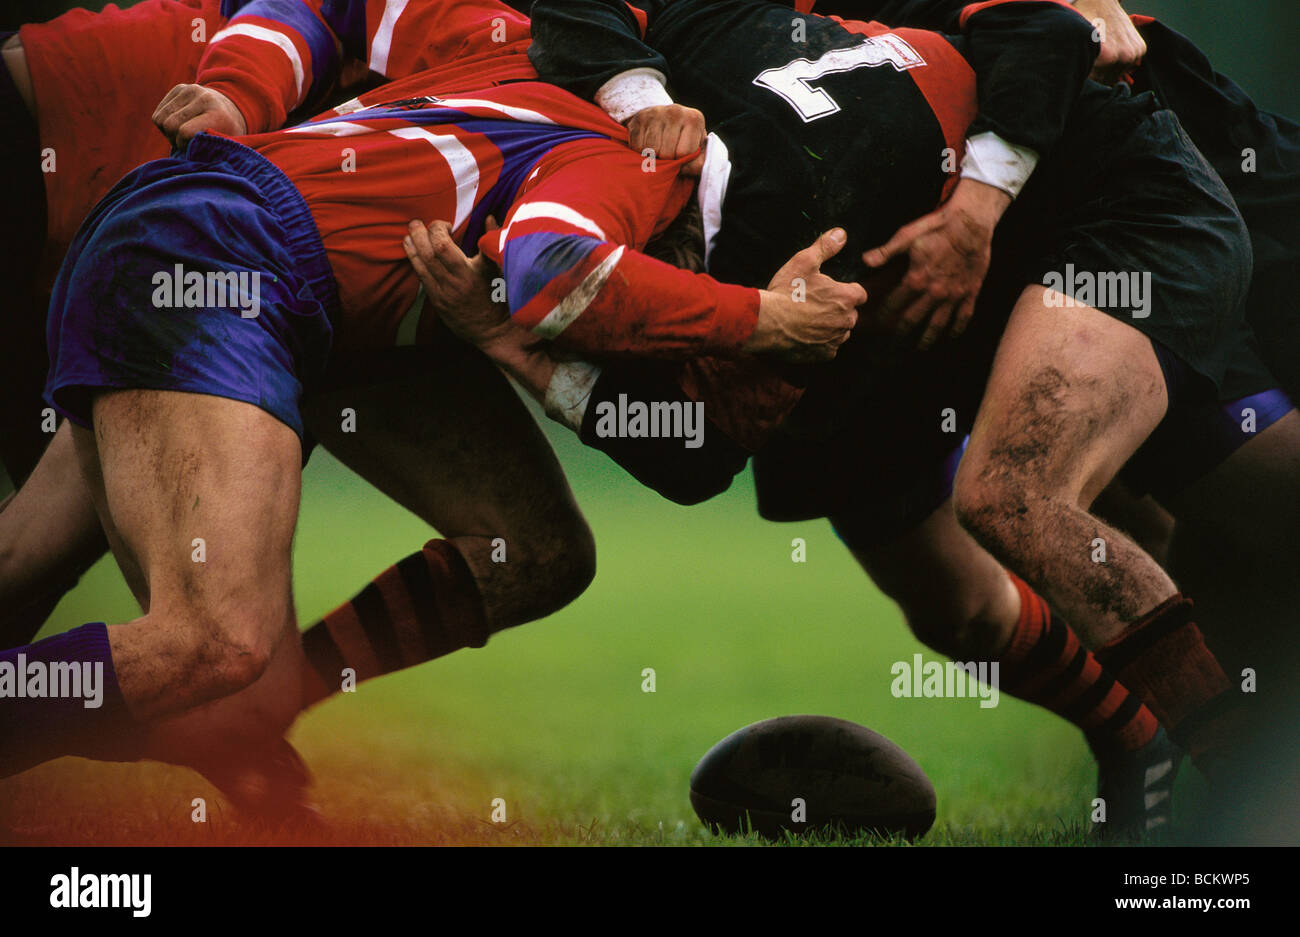 Rugby scrum - Stock Image